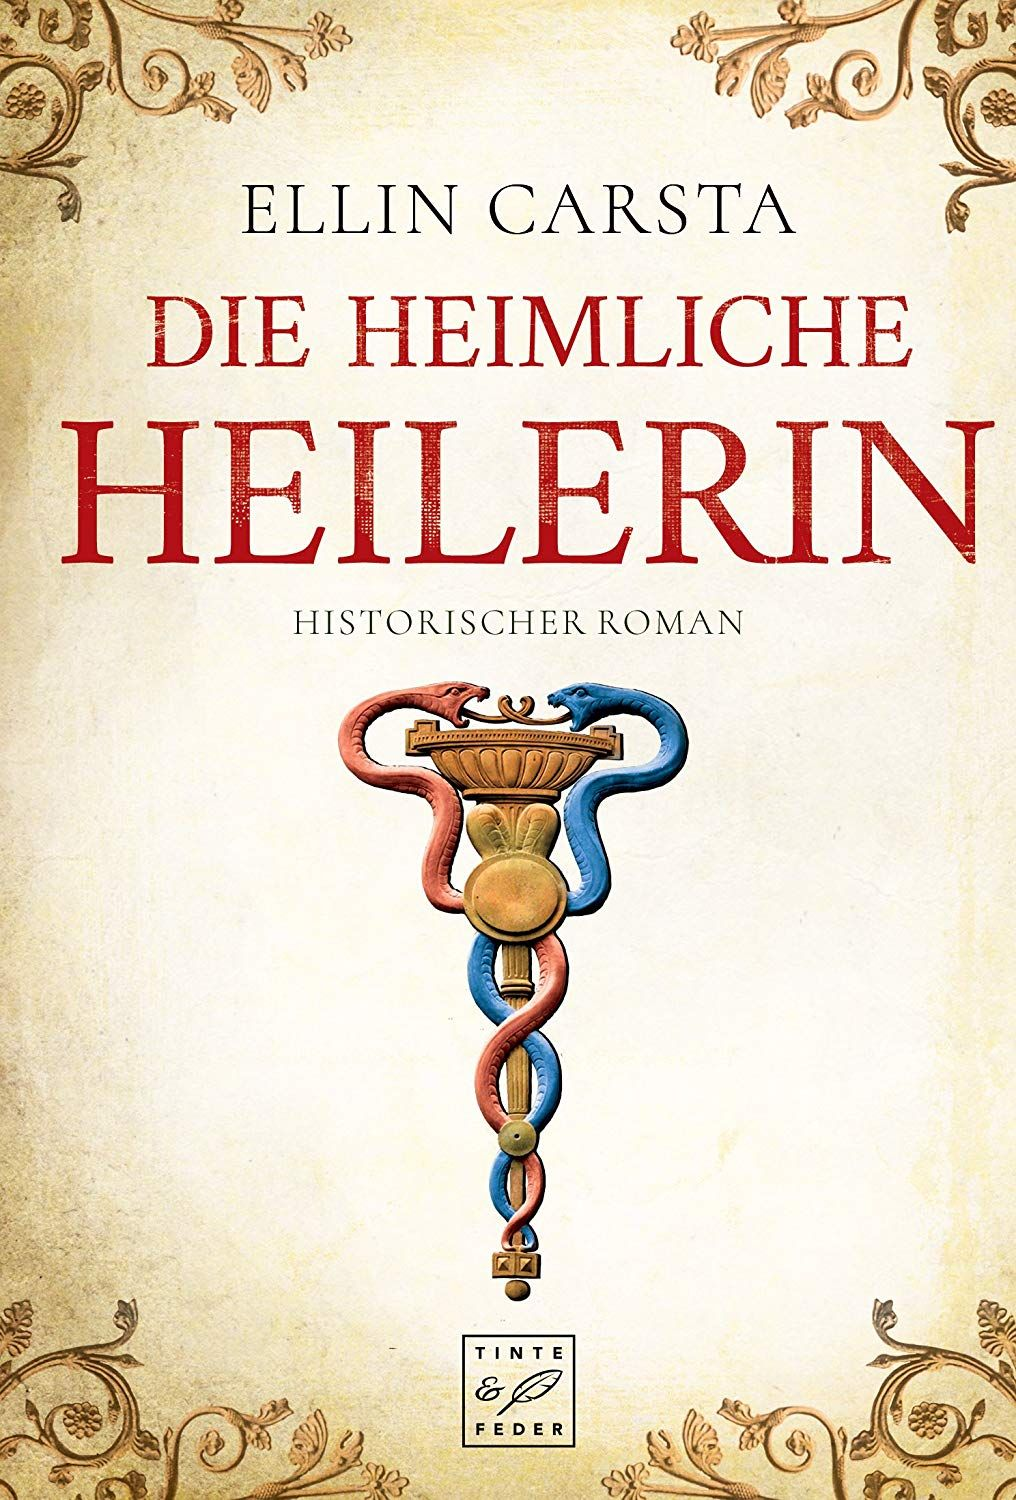 Die heimliche Heilerin eBook Ellin Carsta Amazon.de